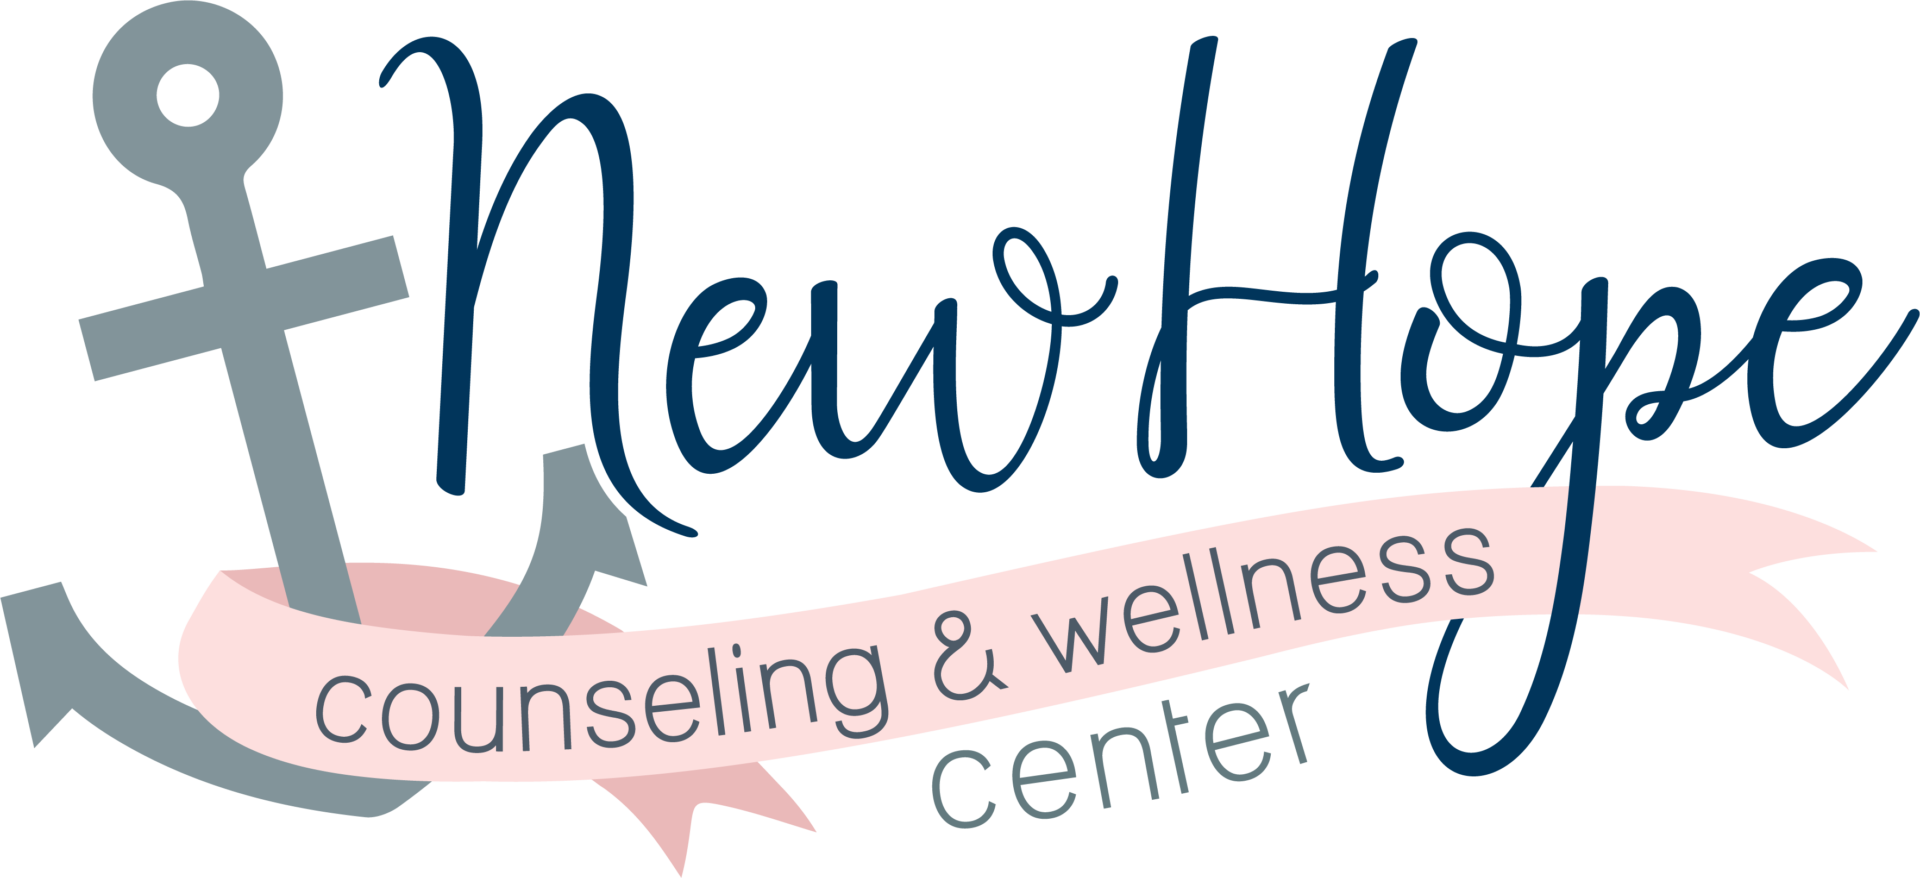 New Hope Counseling & Wellness Center logo